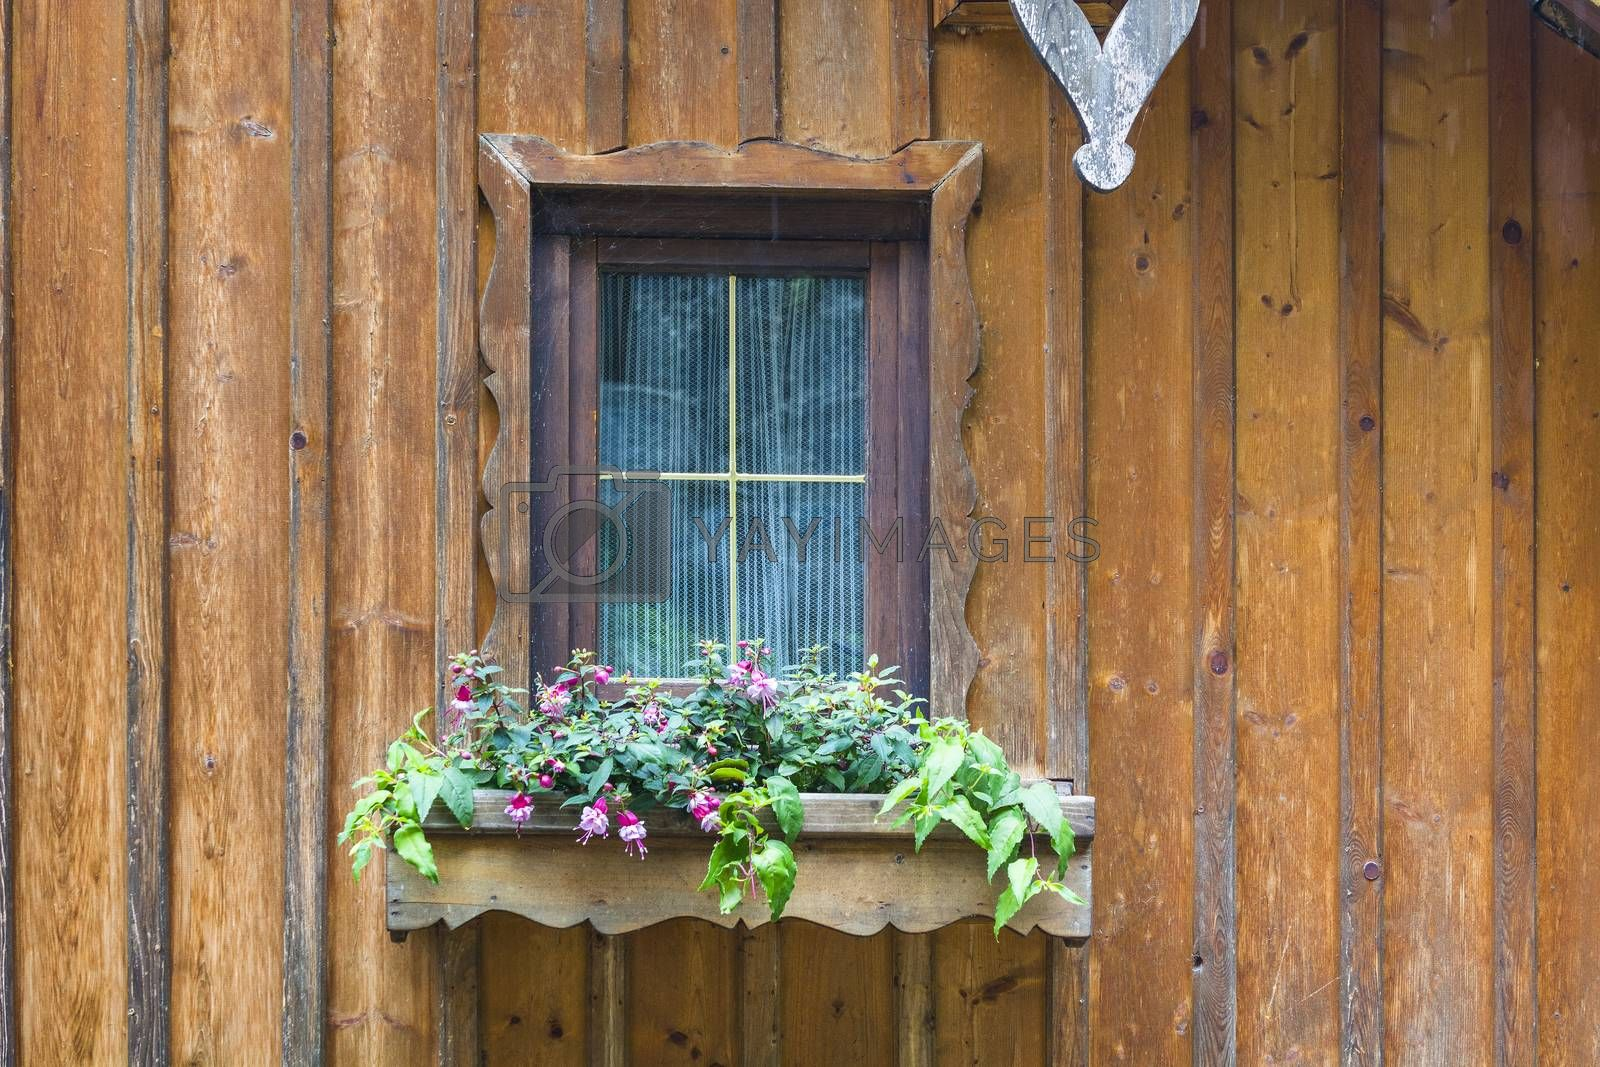 Typical window of a house in a small town in Austria. Home in the Austrian city of Hallstatt on a rainy day.